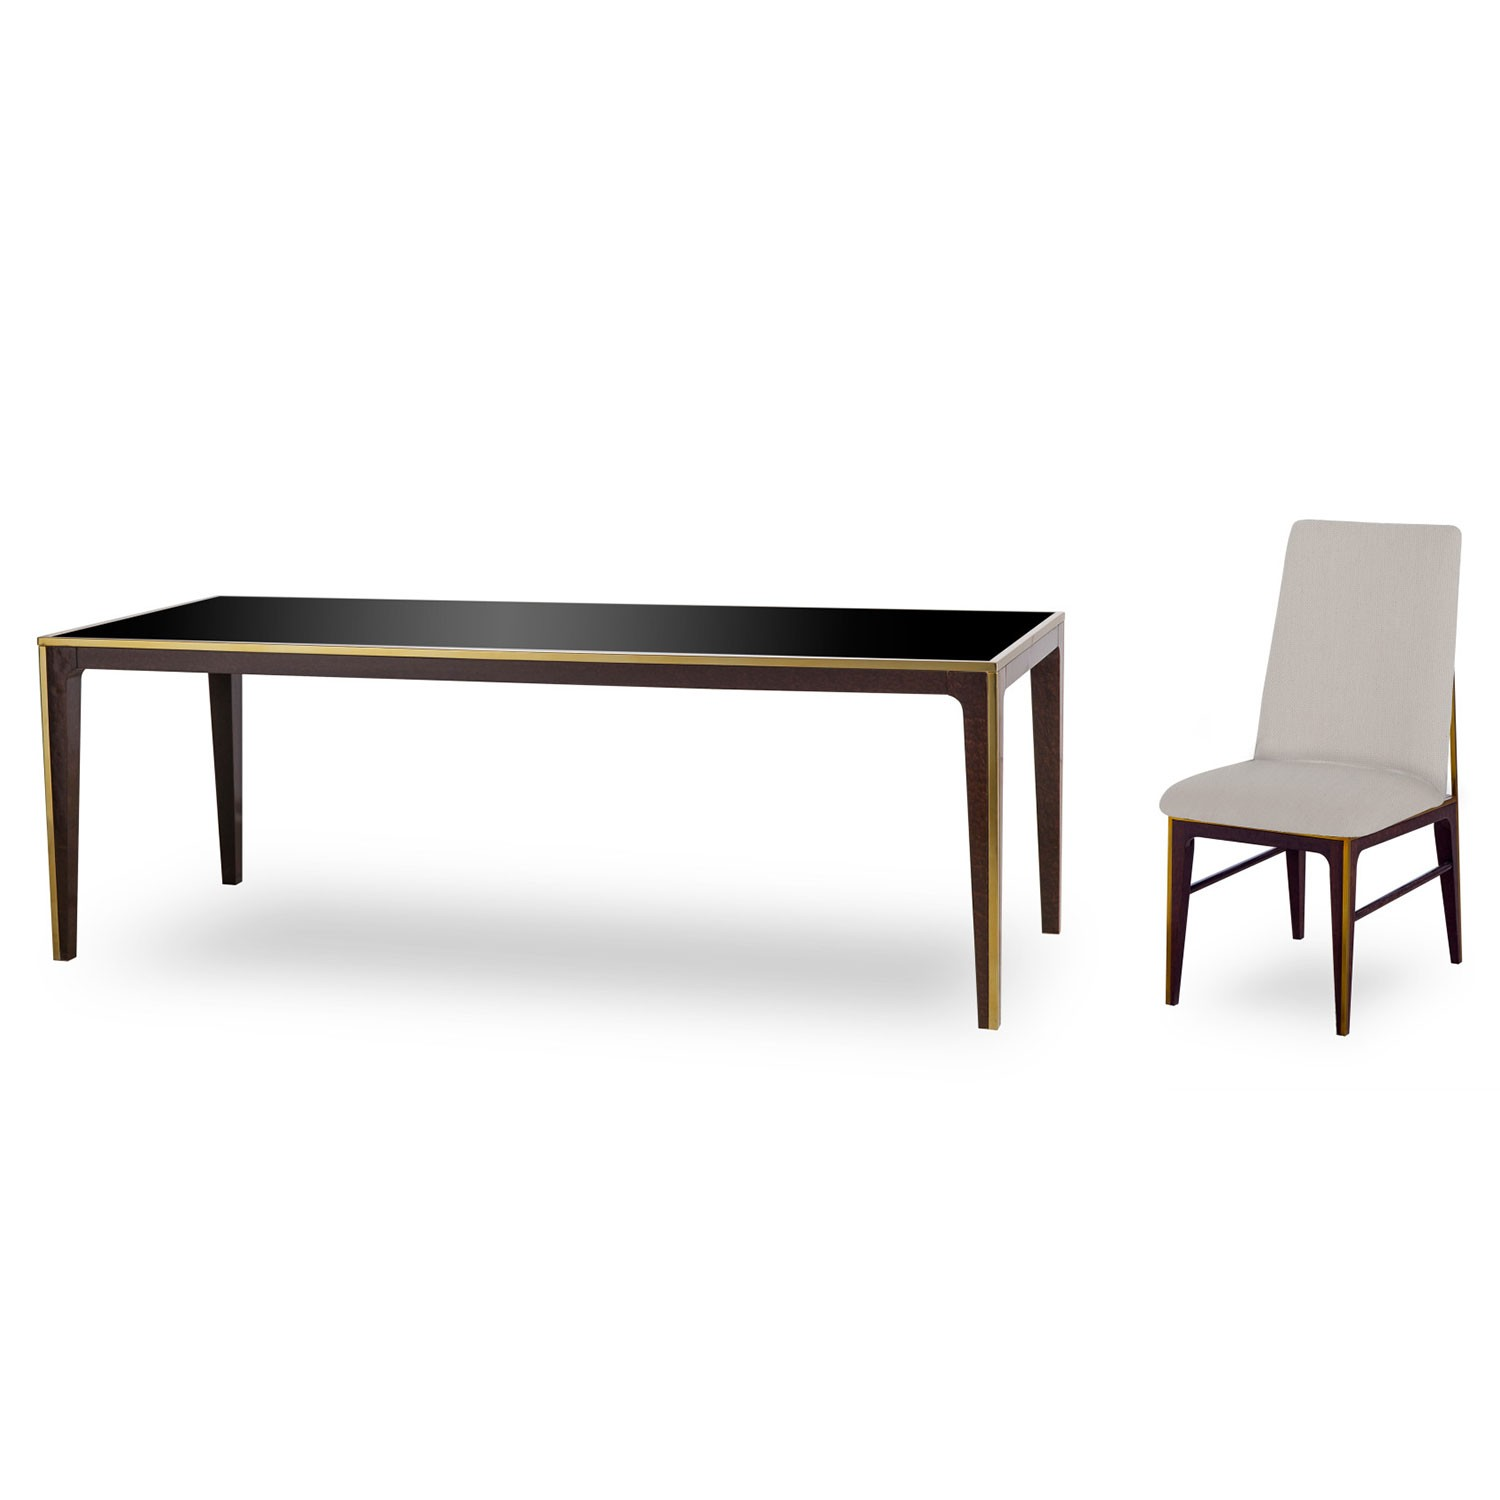 1500x1500 Silhouette Dining Table